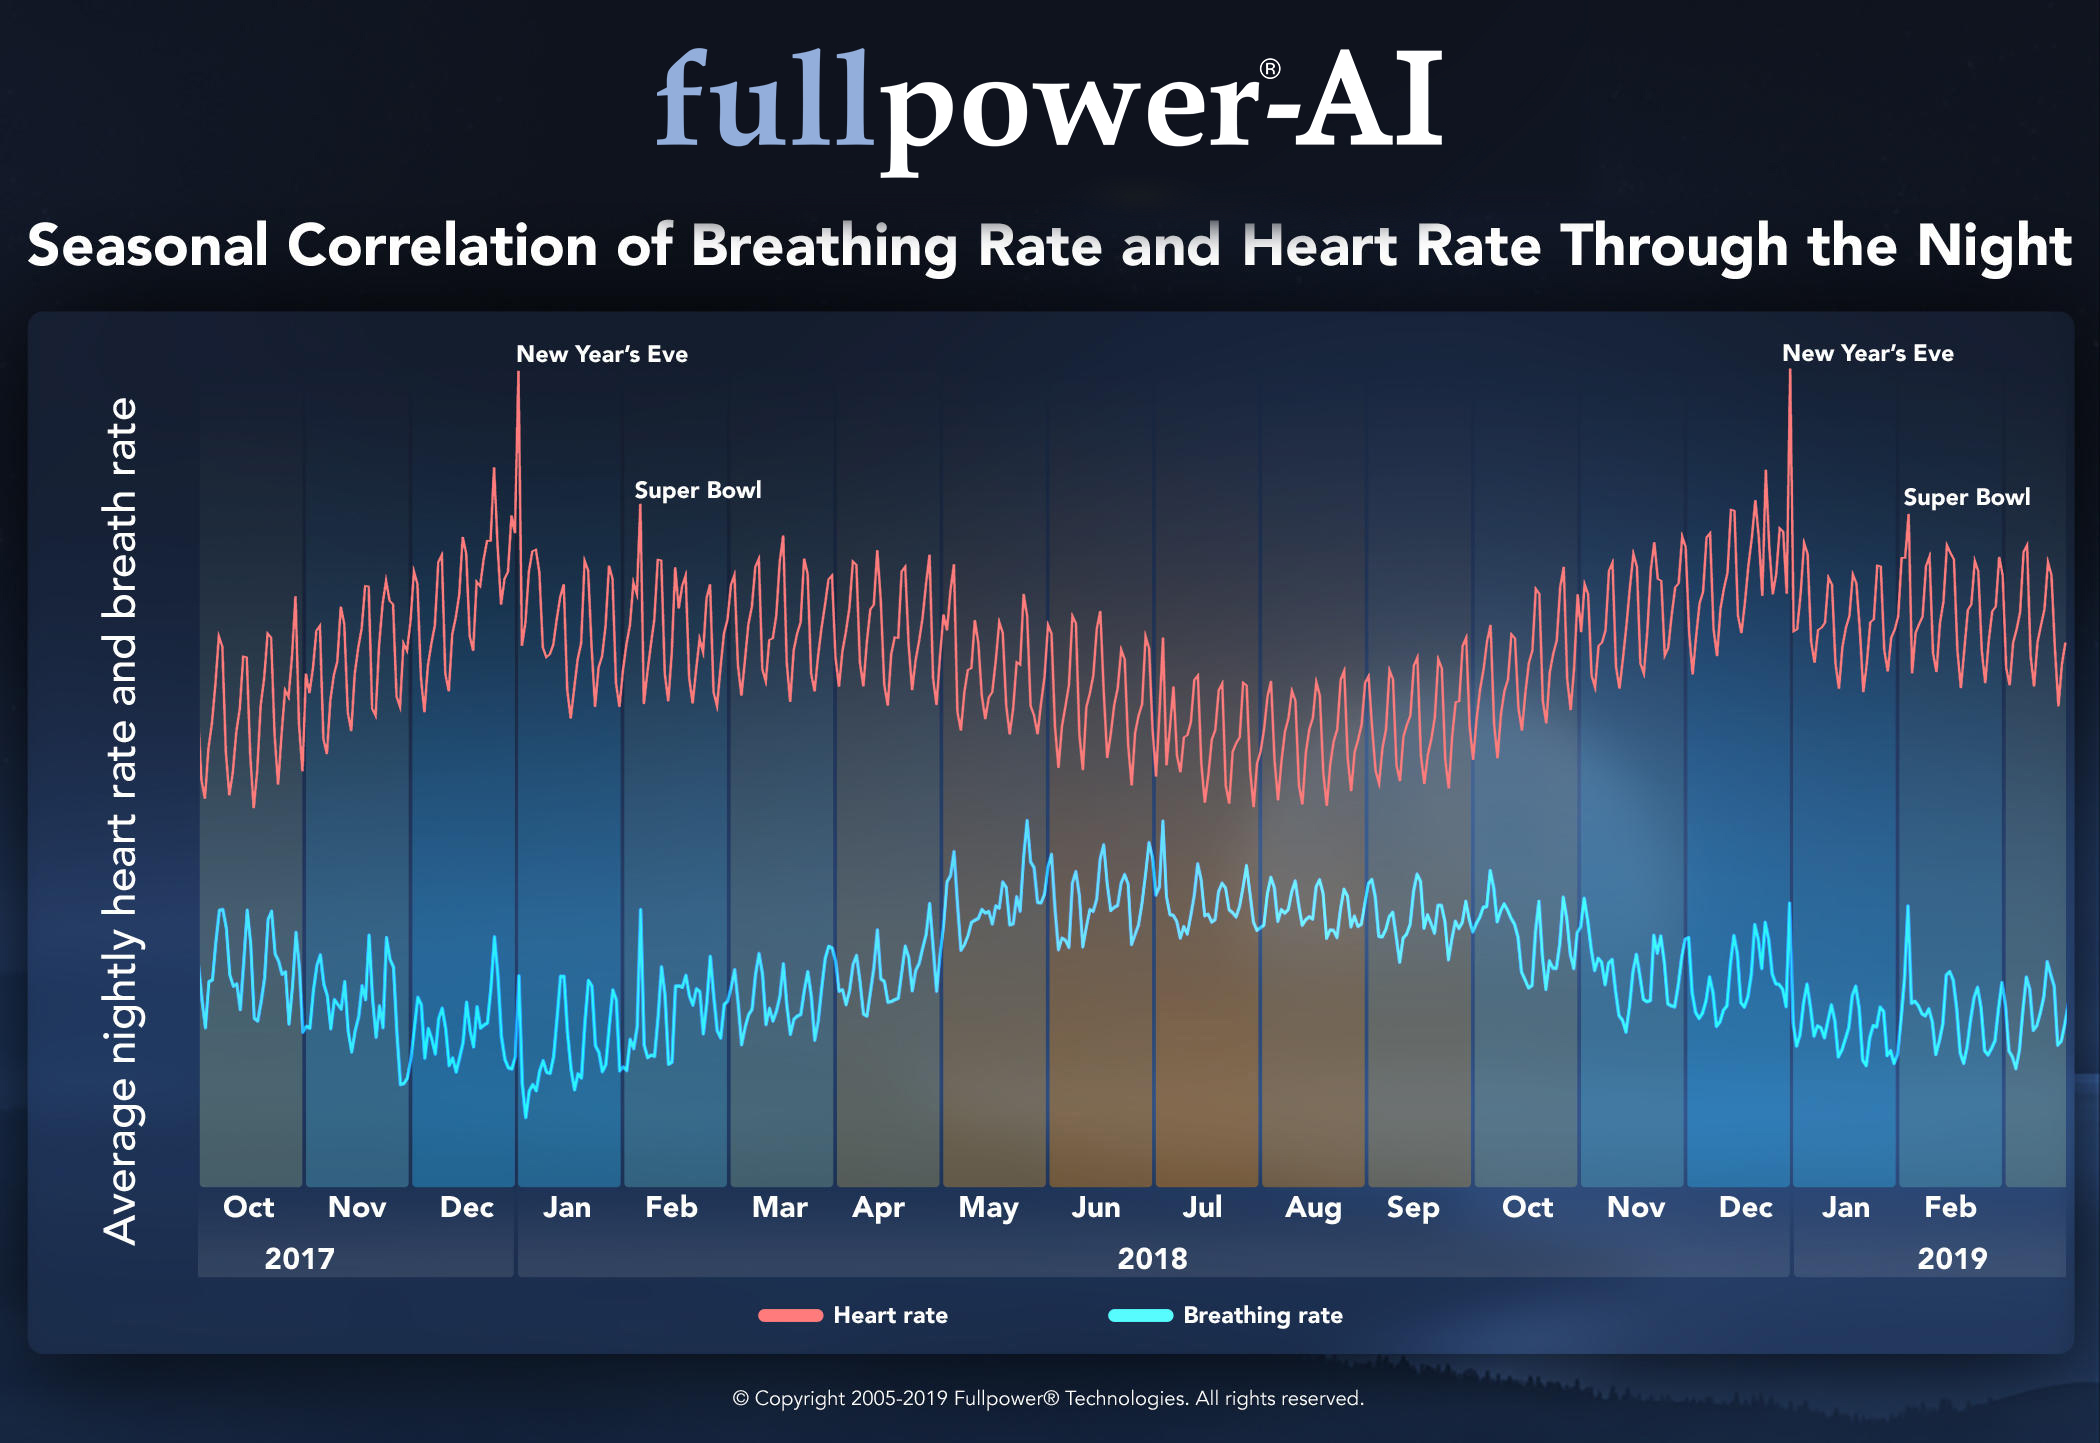 seasonal-correlation-of-breathing-rate-and-heart-rate-through-the-night